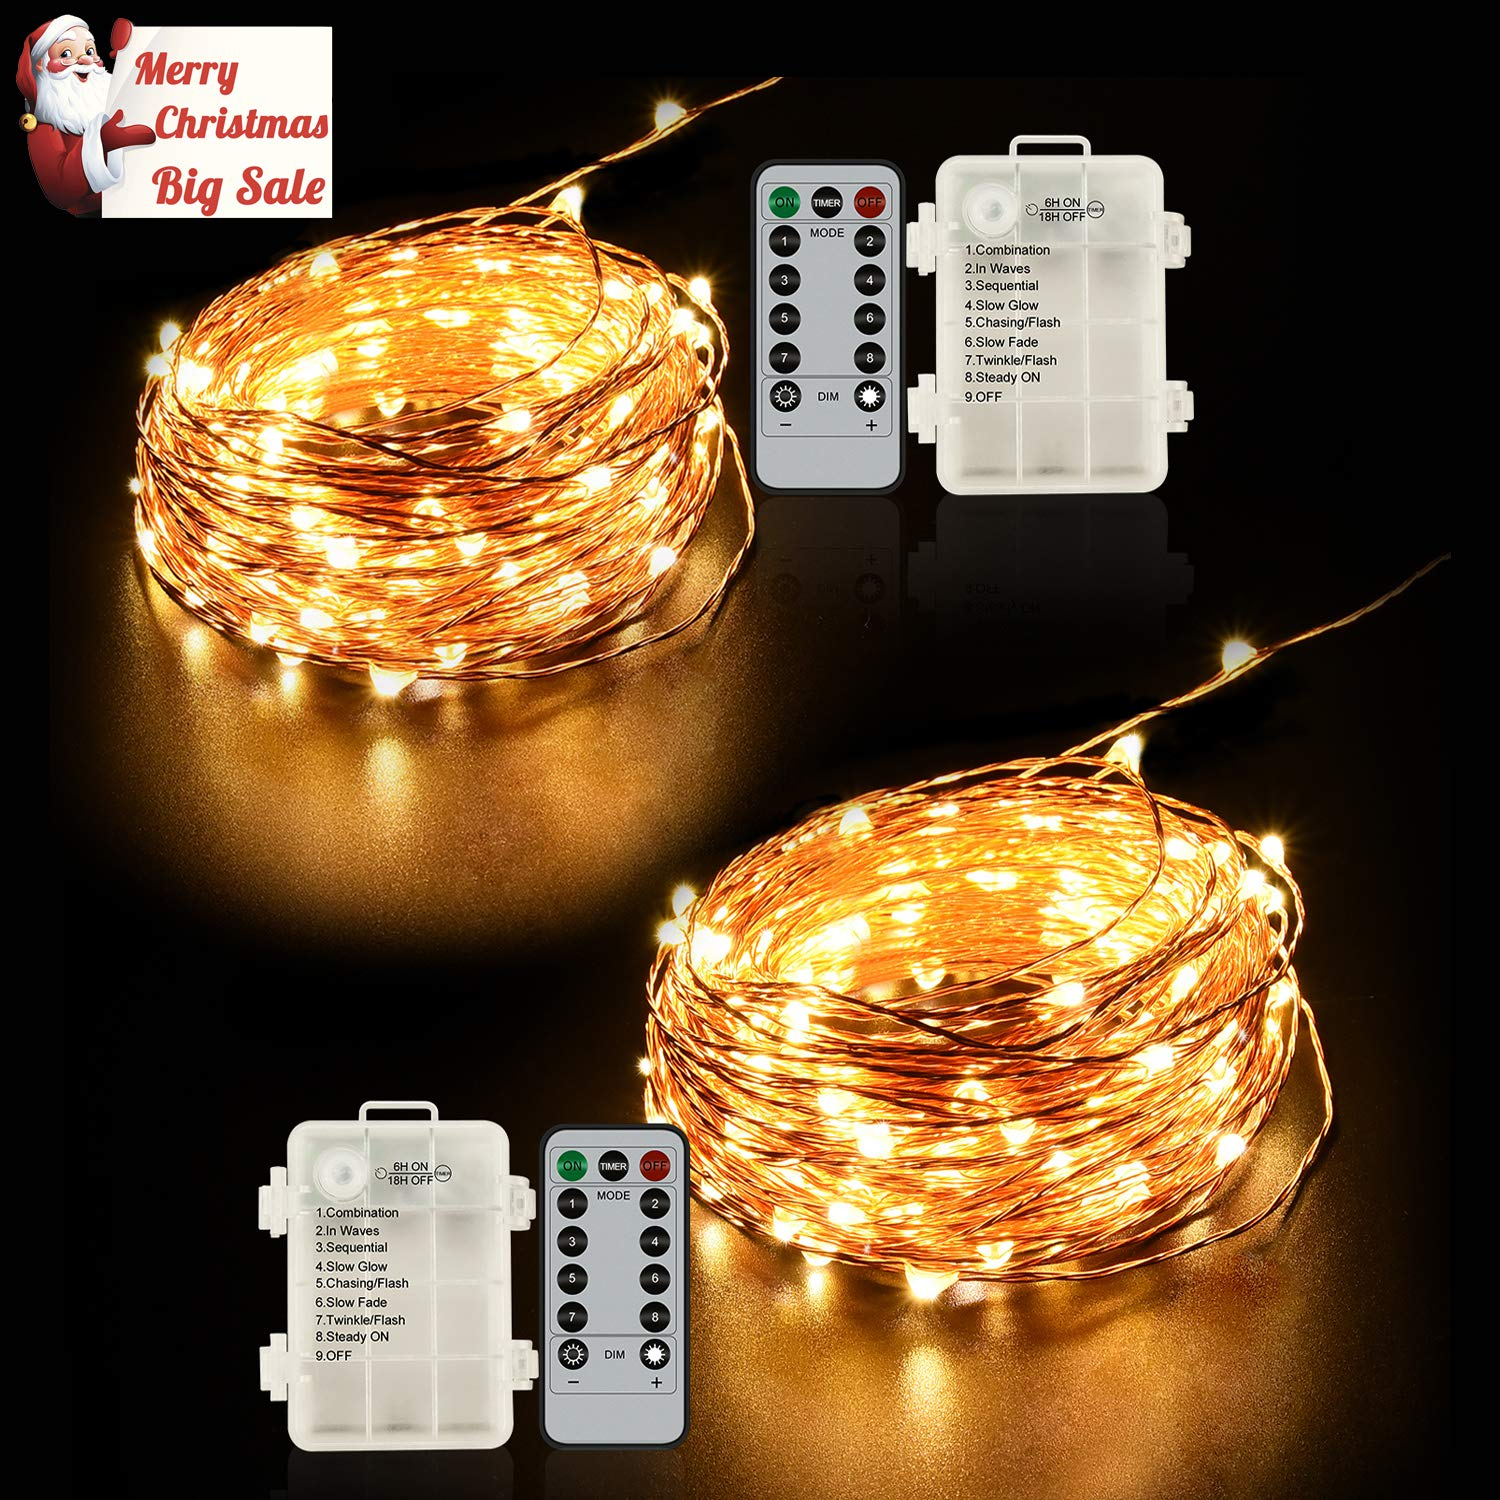 Ylife 2 Pack Fairy Light Battery Operated 16.4Ft 50 LED Waterproof Warm White String Lights 8 Modes Remote Control Decorative Copper Wire Lights for Festival Party